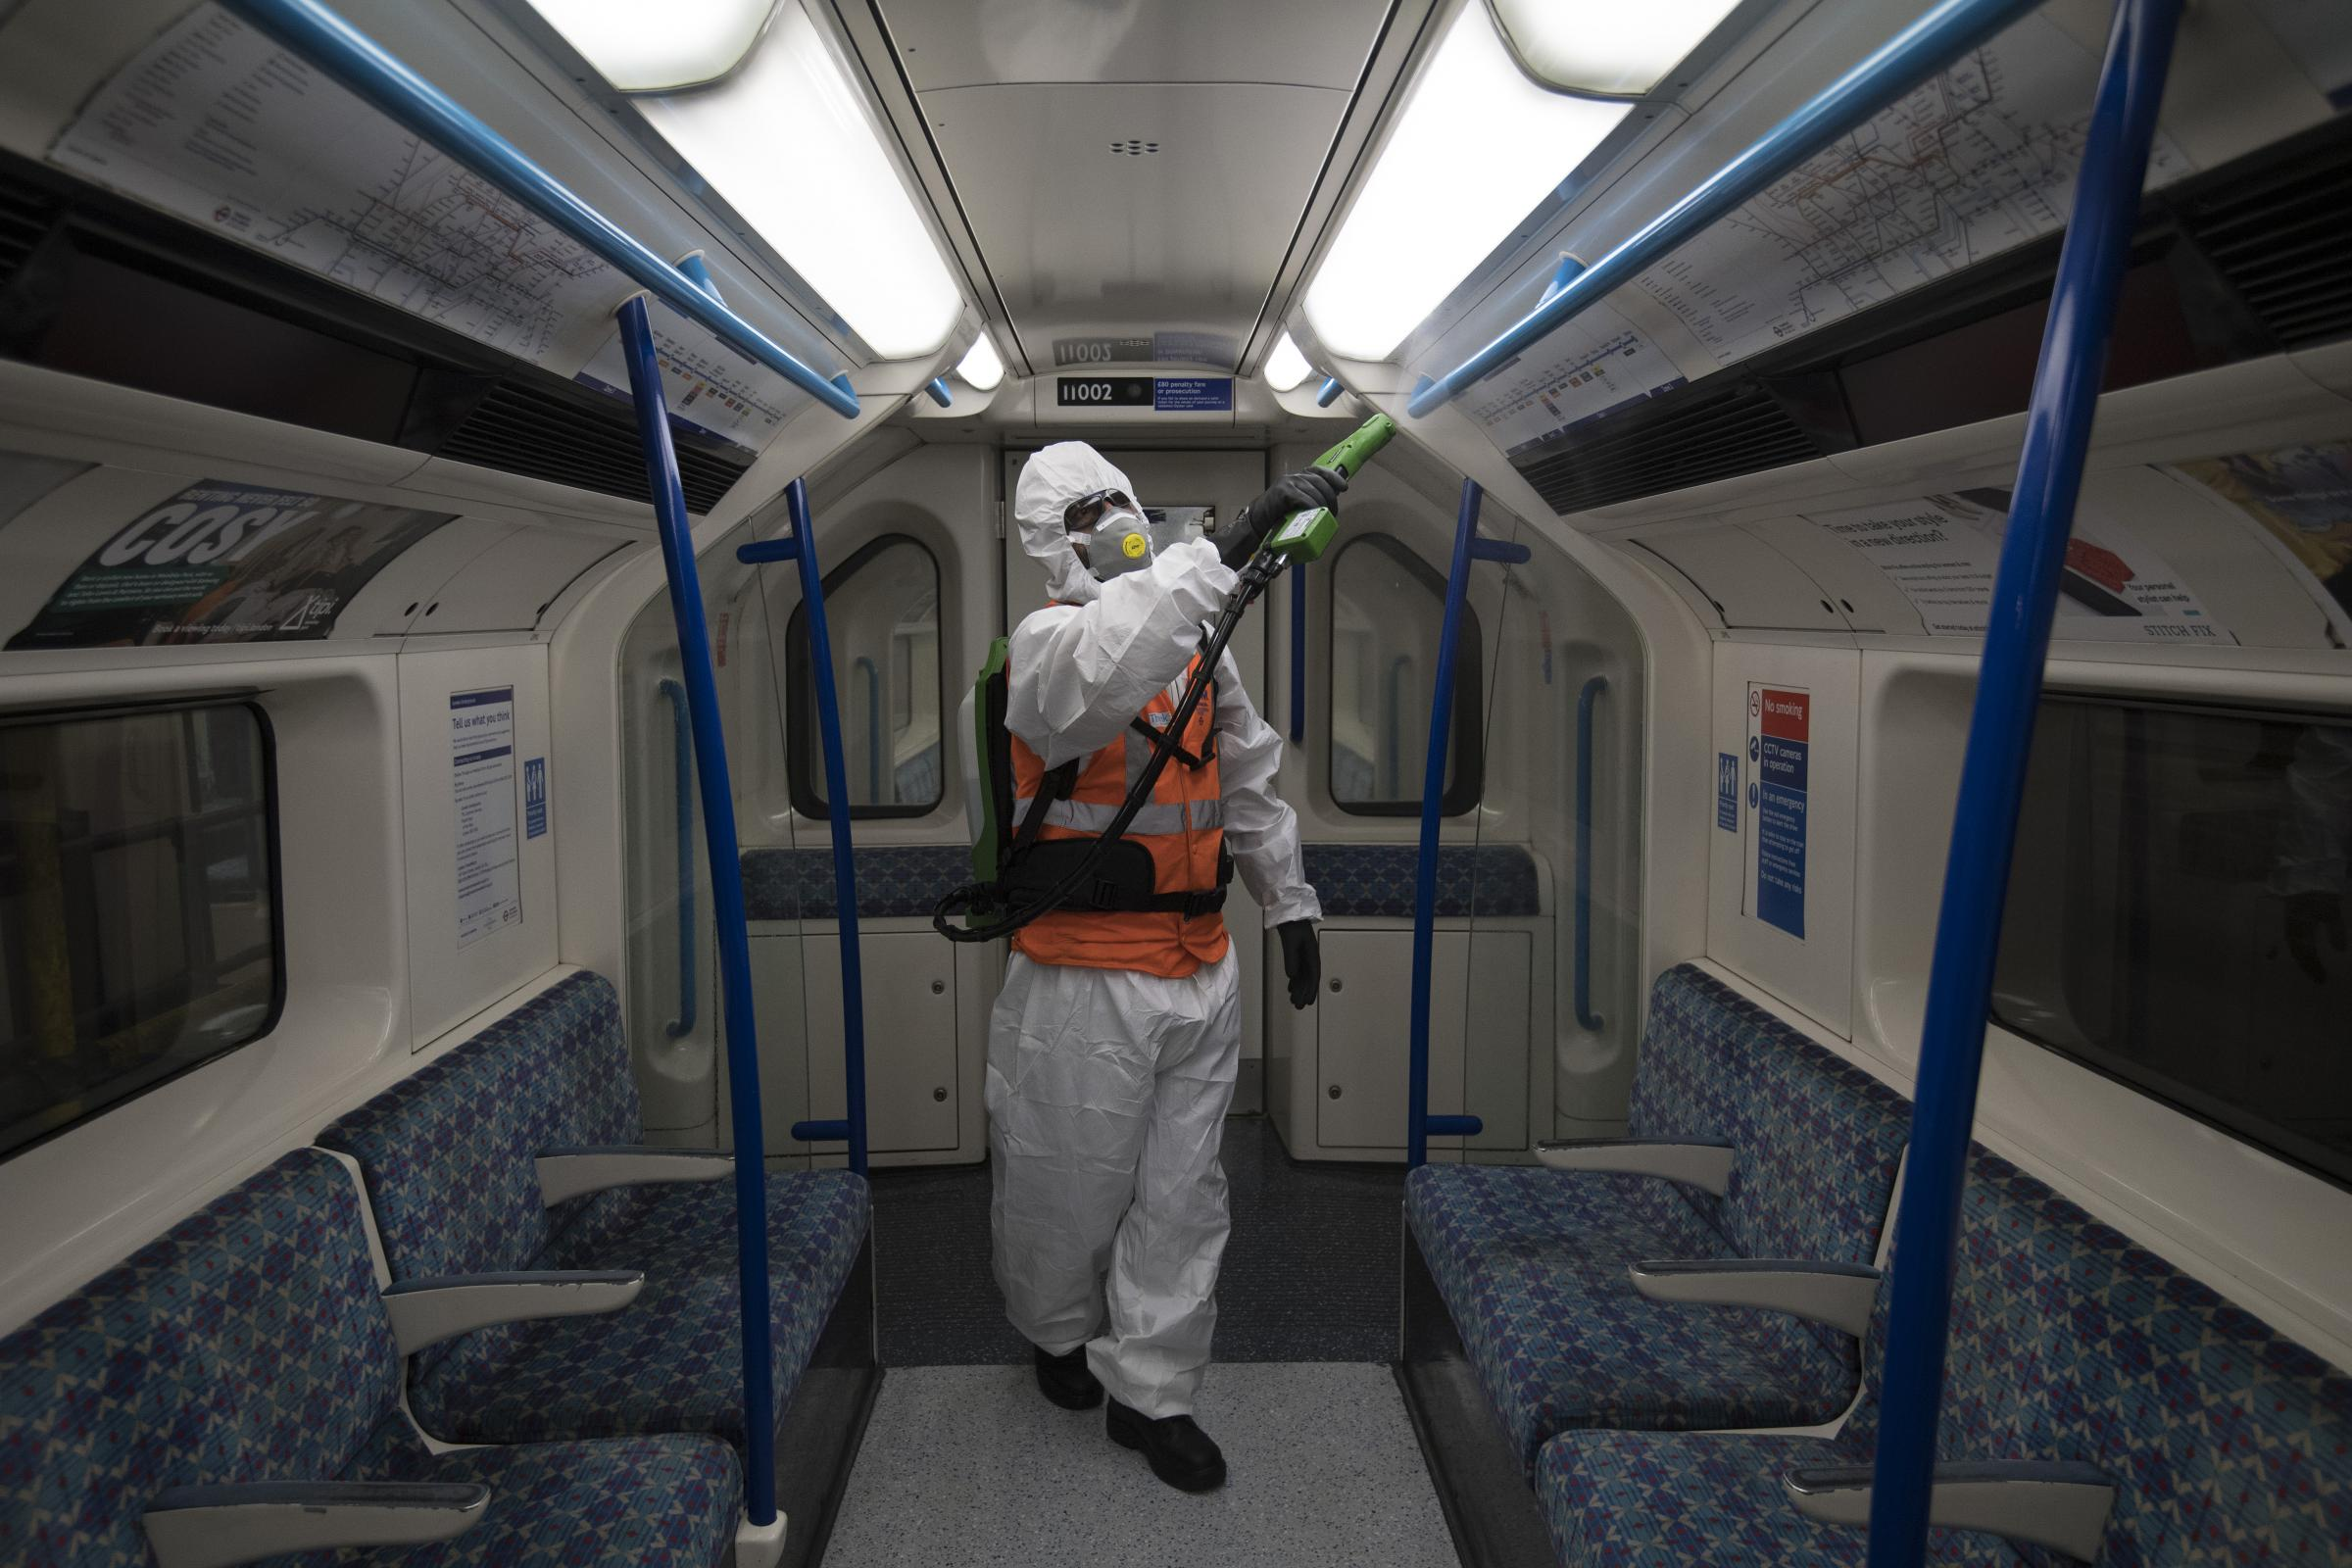 Hospital grade cleaning is being used to clean TfL services (Photo: PA)